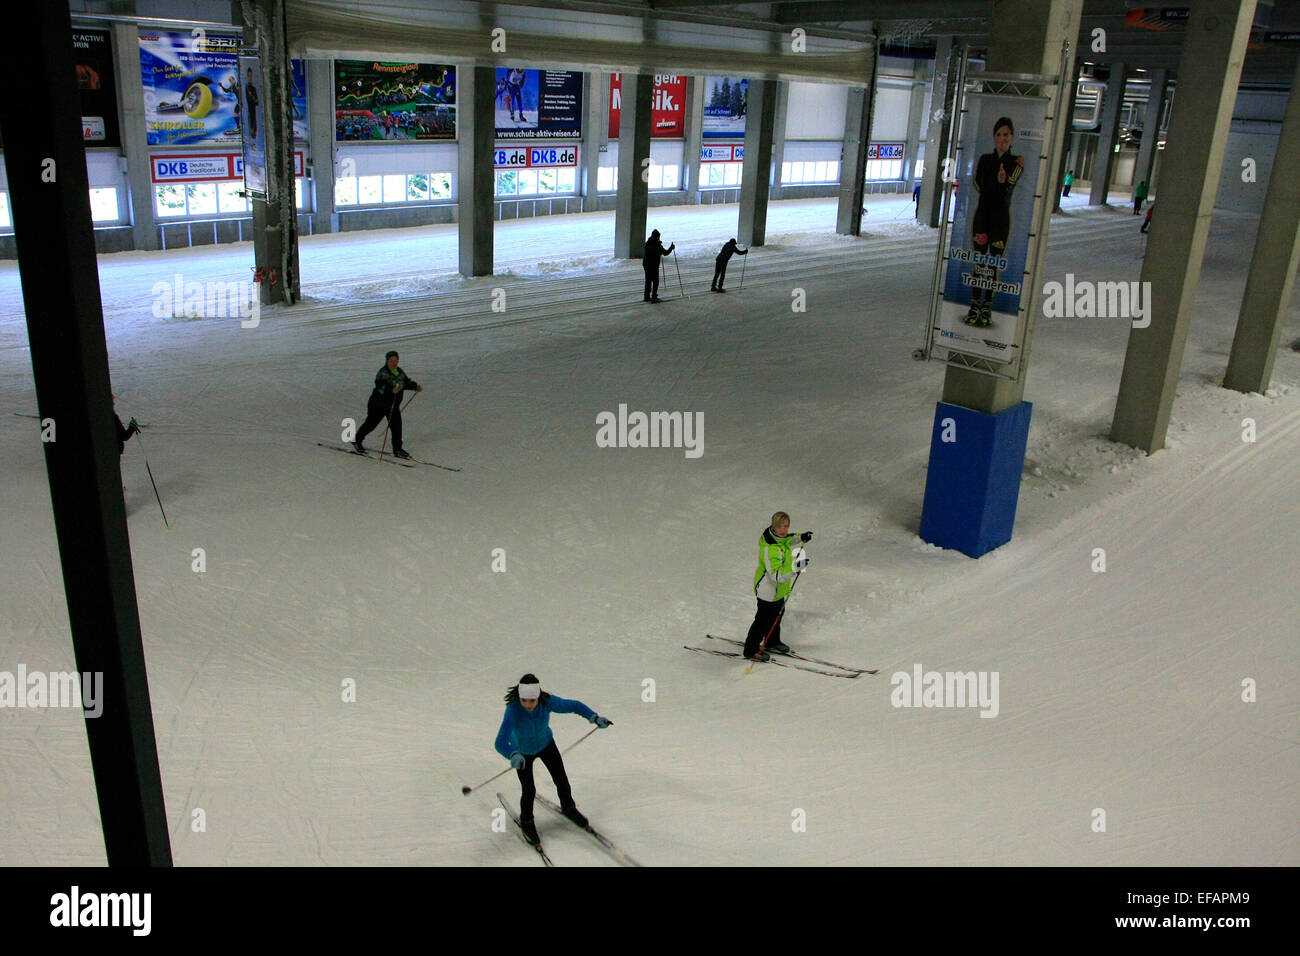 The skiing hall in Oberhof is unique and has been found between the alpine slopes and the Biathlon Stadium place. - Stock Image